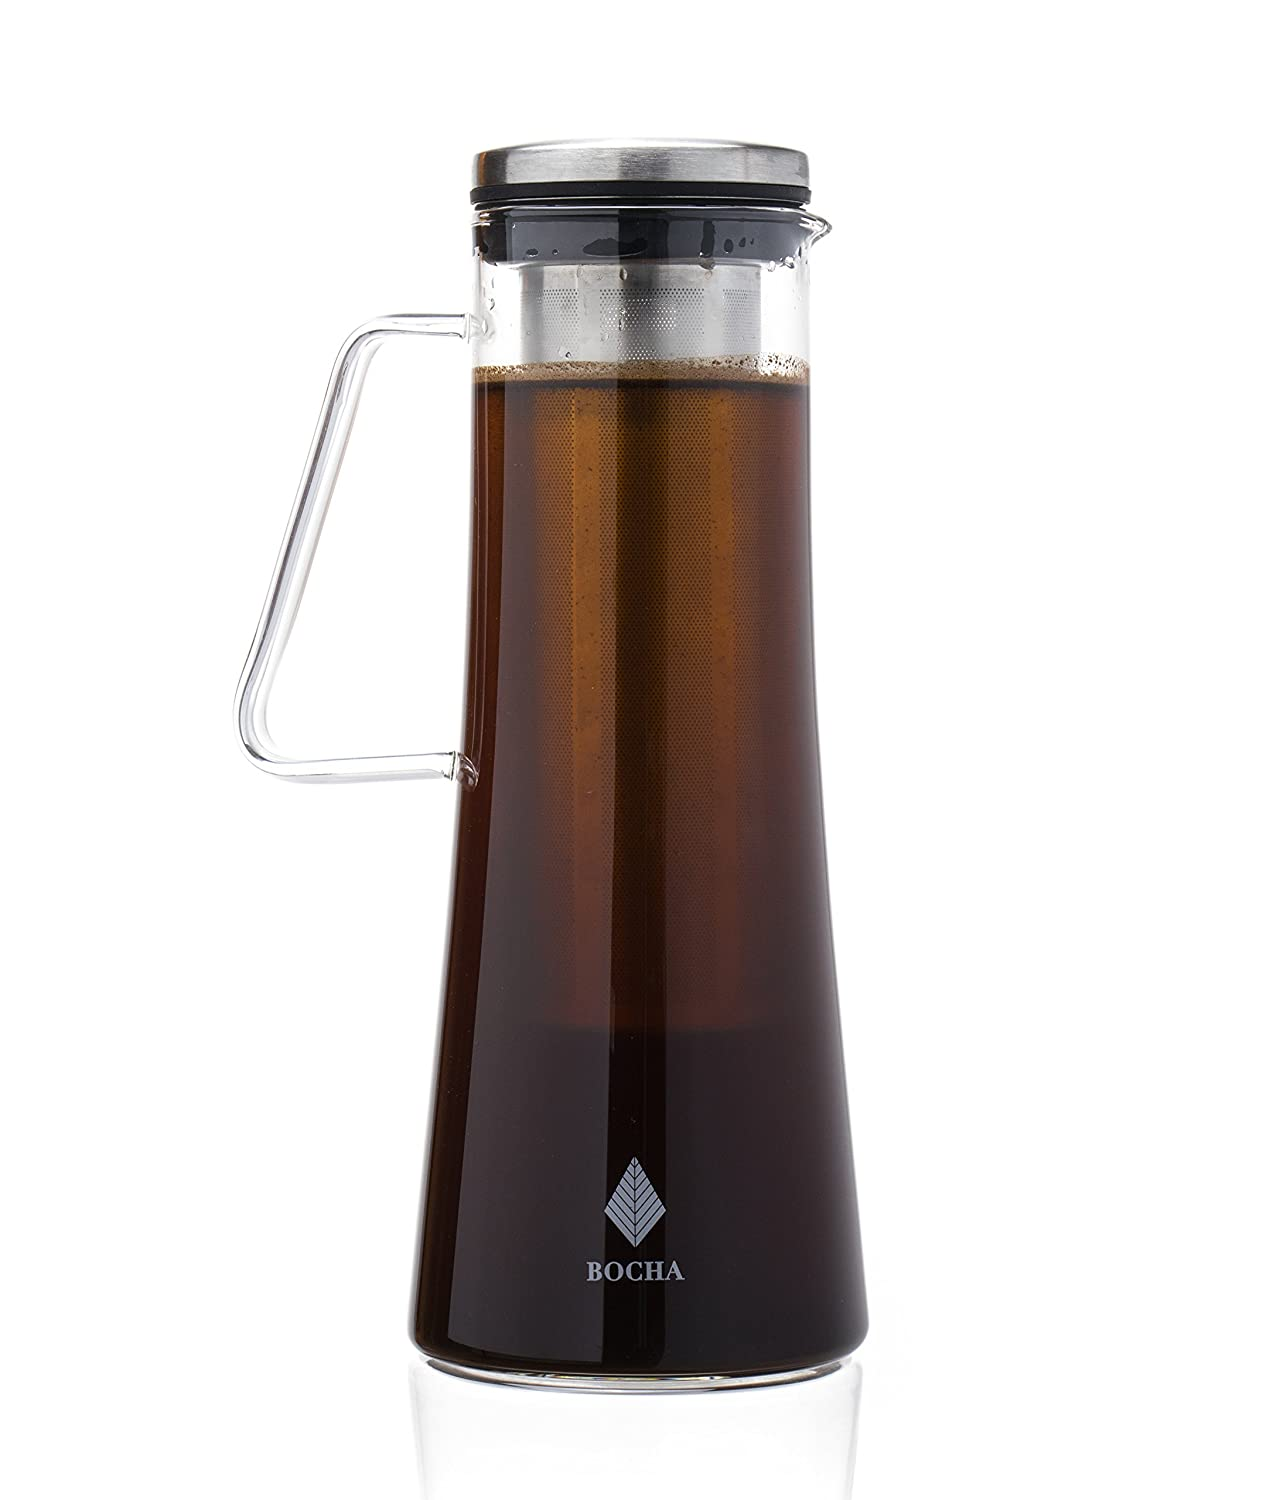 Cold Brew Iced Coffee Maker and Teapot Infuser - 1L Glass Pitcher Carafe with Removable Stainless Steel Infuser, Airtight Lid and FREE Cleaning Brush